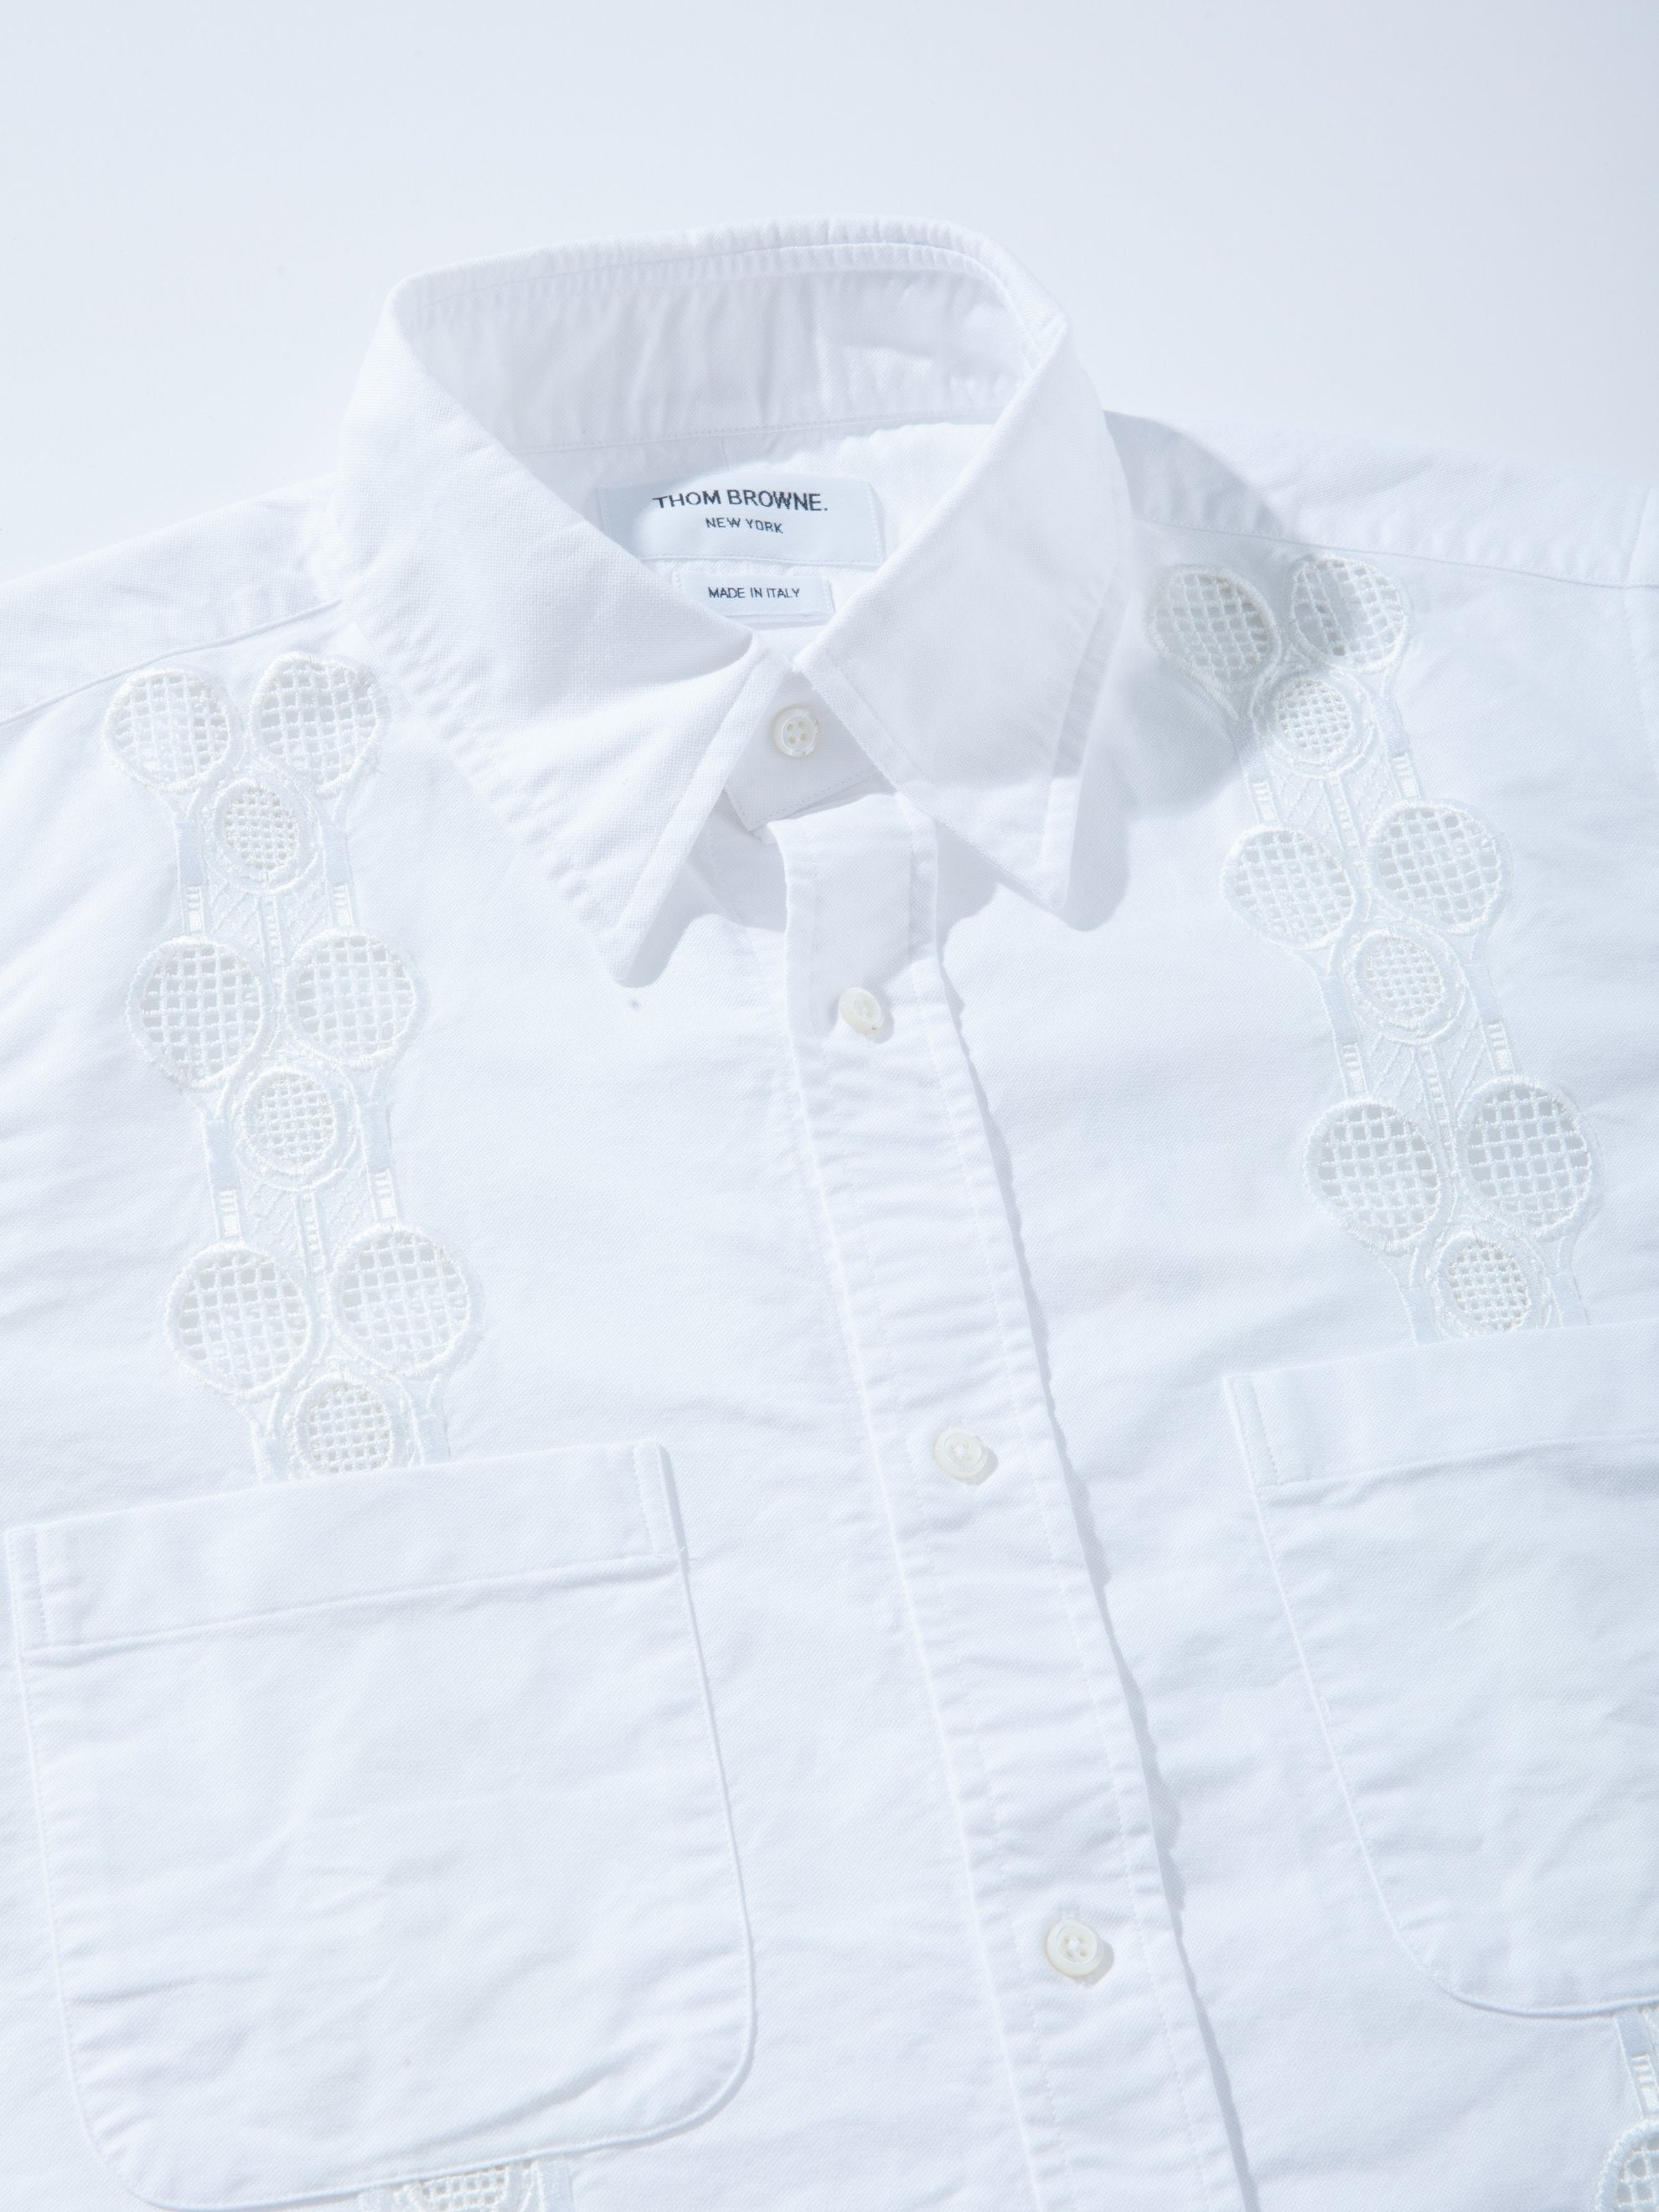 Cuban Shirt W/ Tennis Racket Embroidery